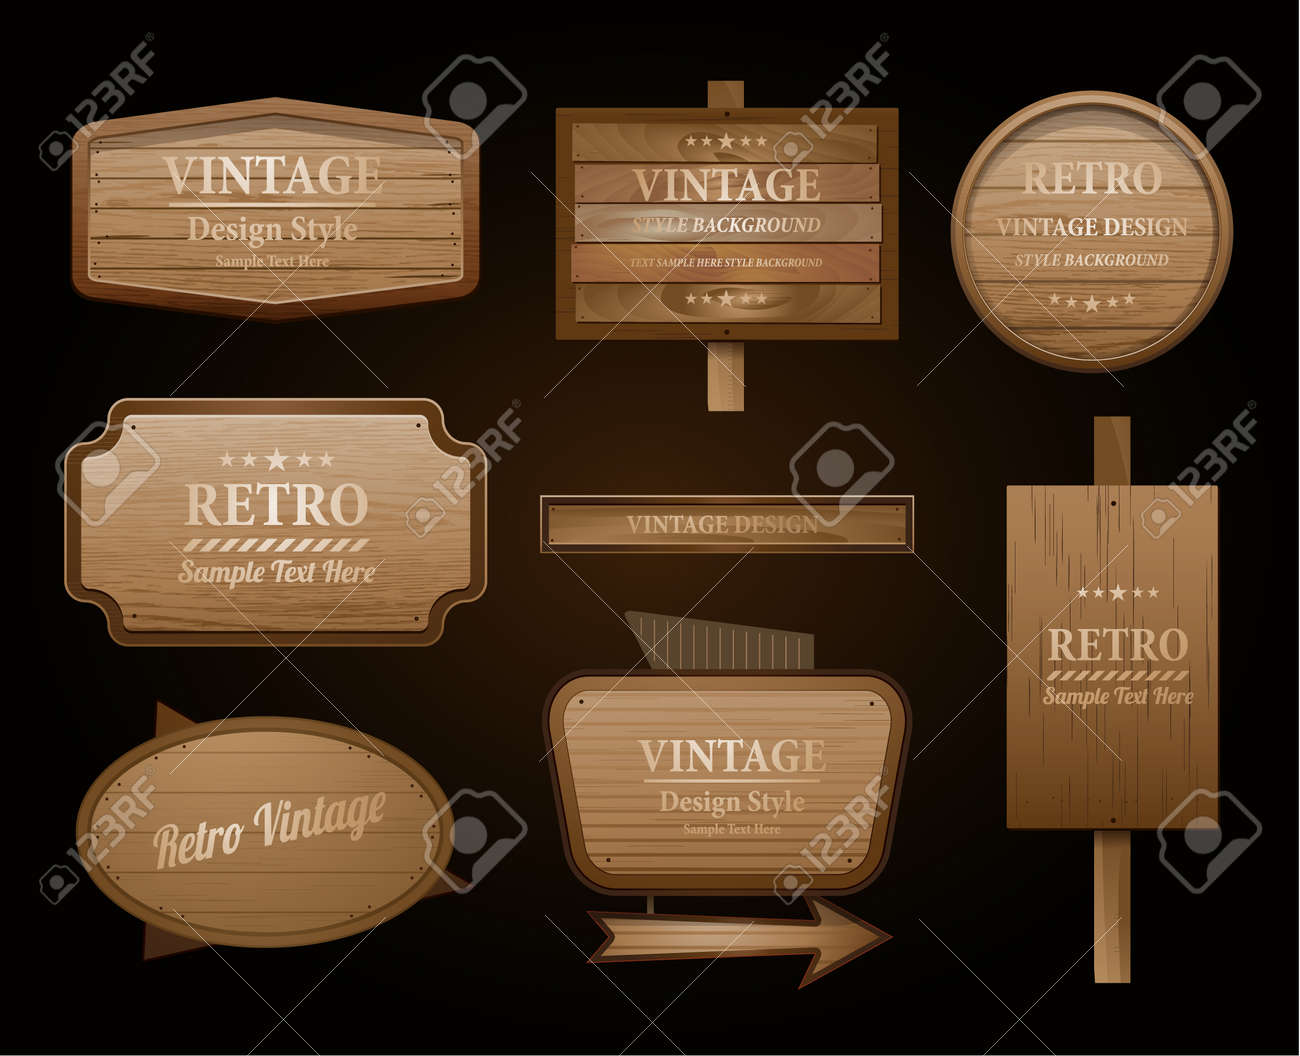 Realistic vector wood sign and banner isolated on black - 50989922